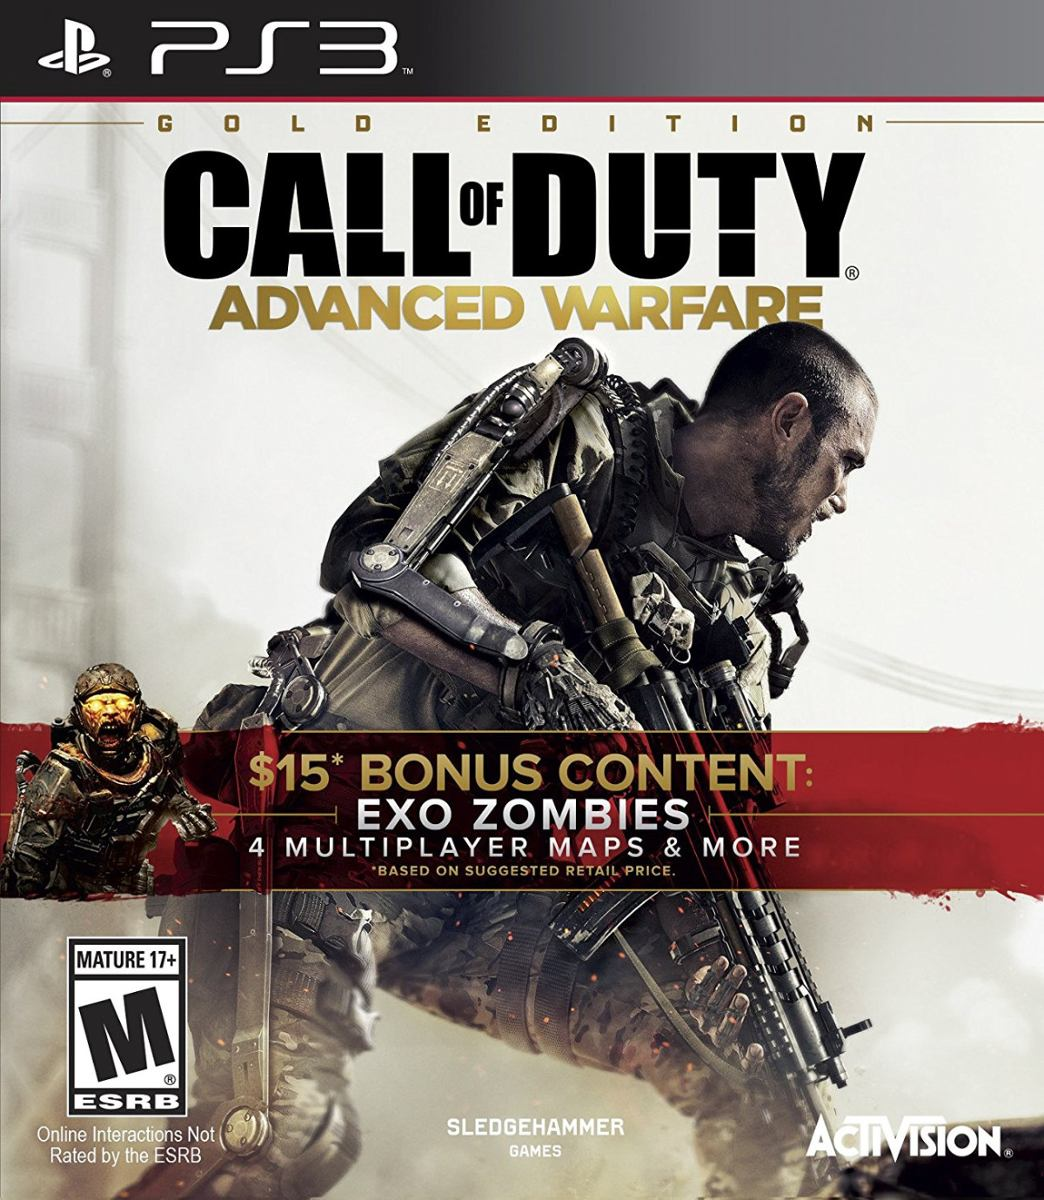 Ps3 Juego Cod Advanced Warfare Exo Zombies Playstation 3 999 00